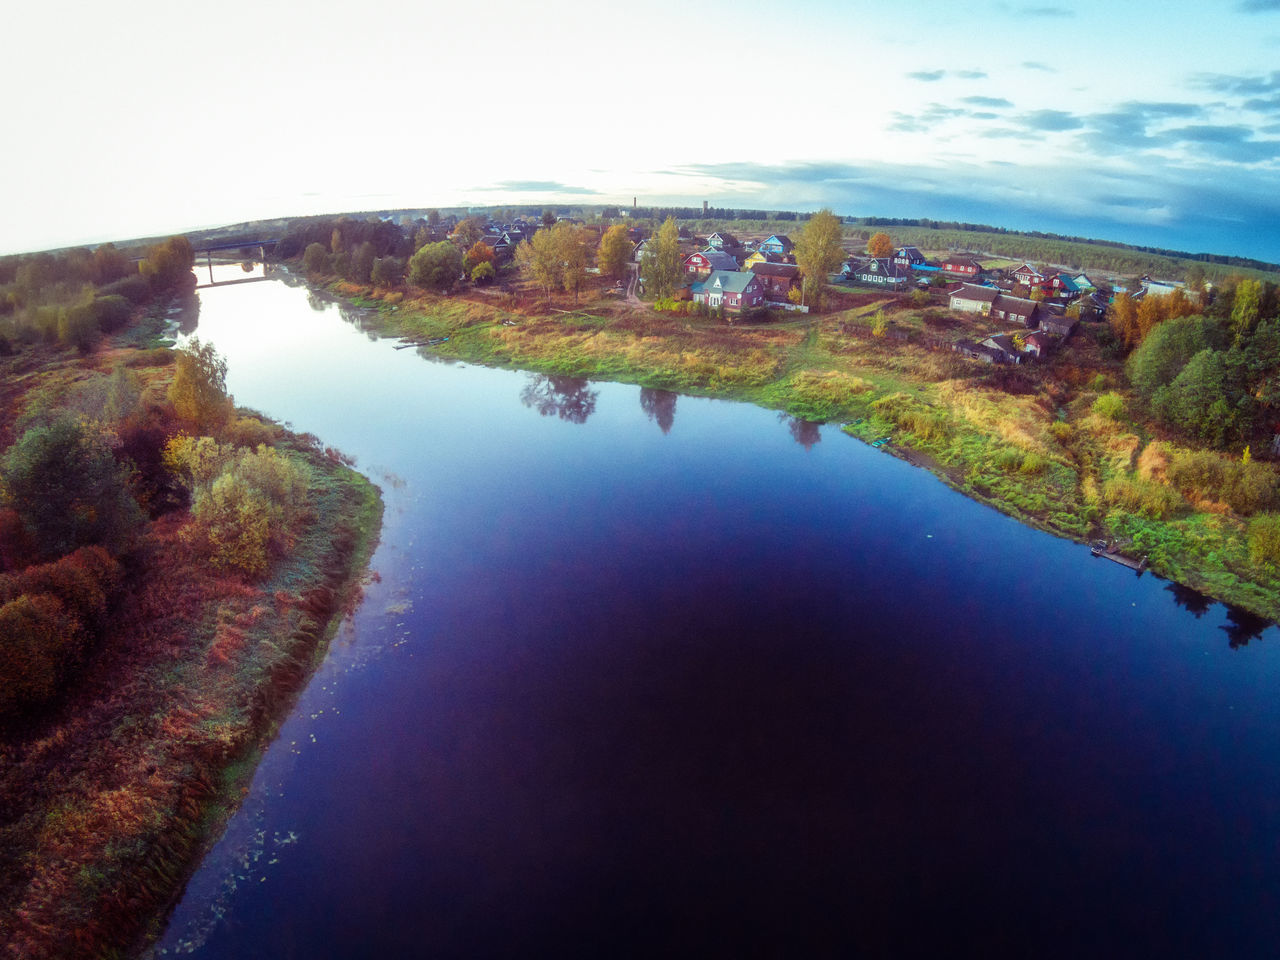 The village on the banks of the river Mologa. One of the many villages Maksatihinsky district of Tver region. Bridge Countryside Day Evening Lake Landscape Mologa Multi Colored Nature No People Outdoors Reflection River Rural Scene Scenics Sky Village Water